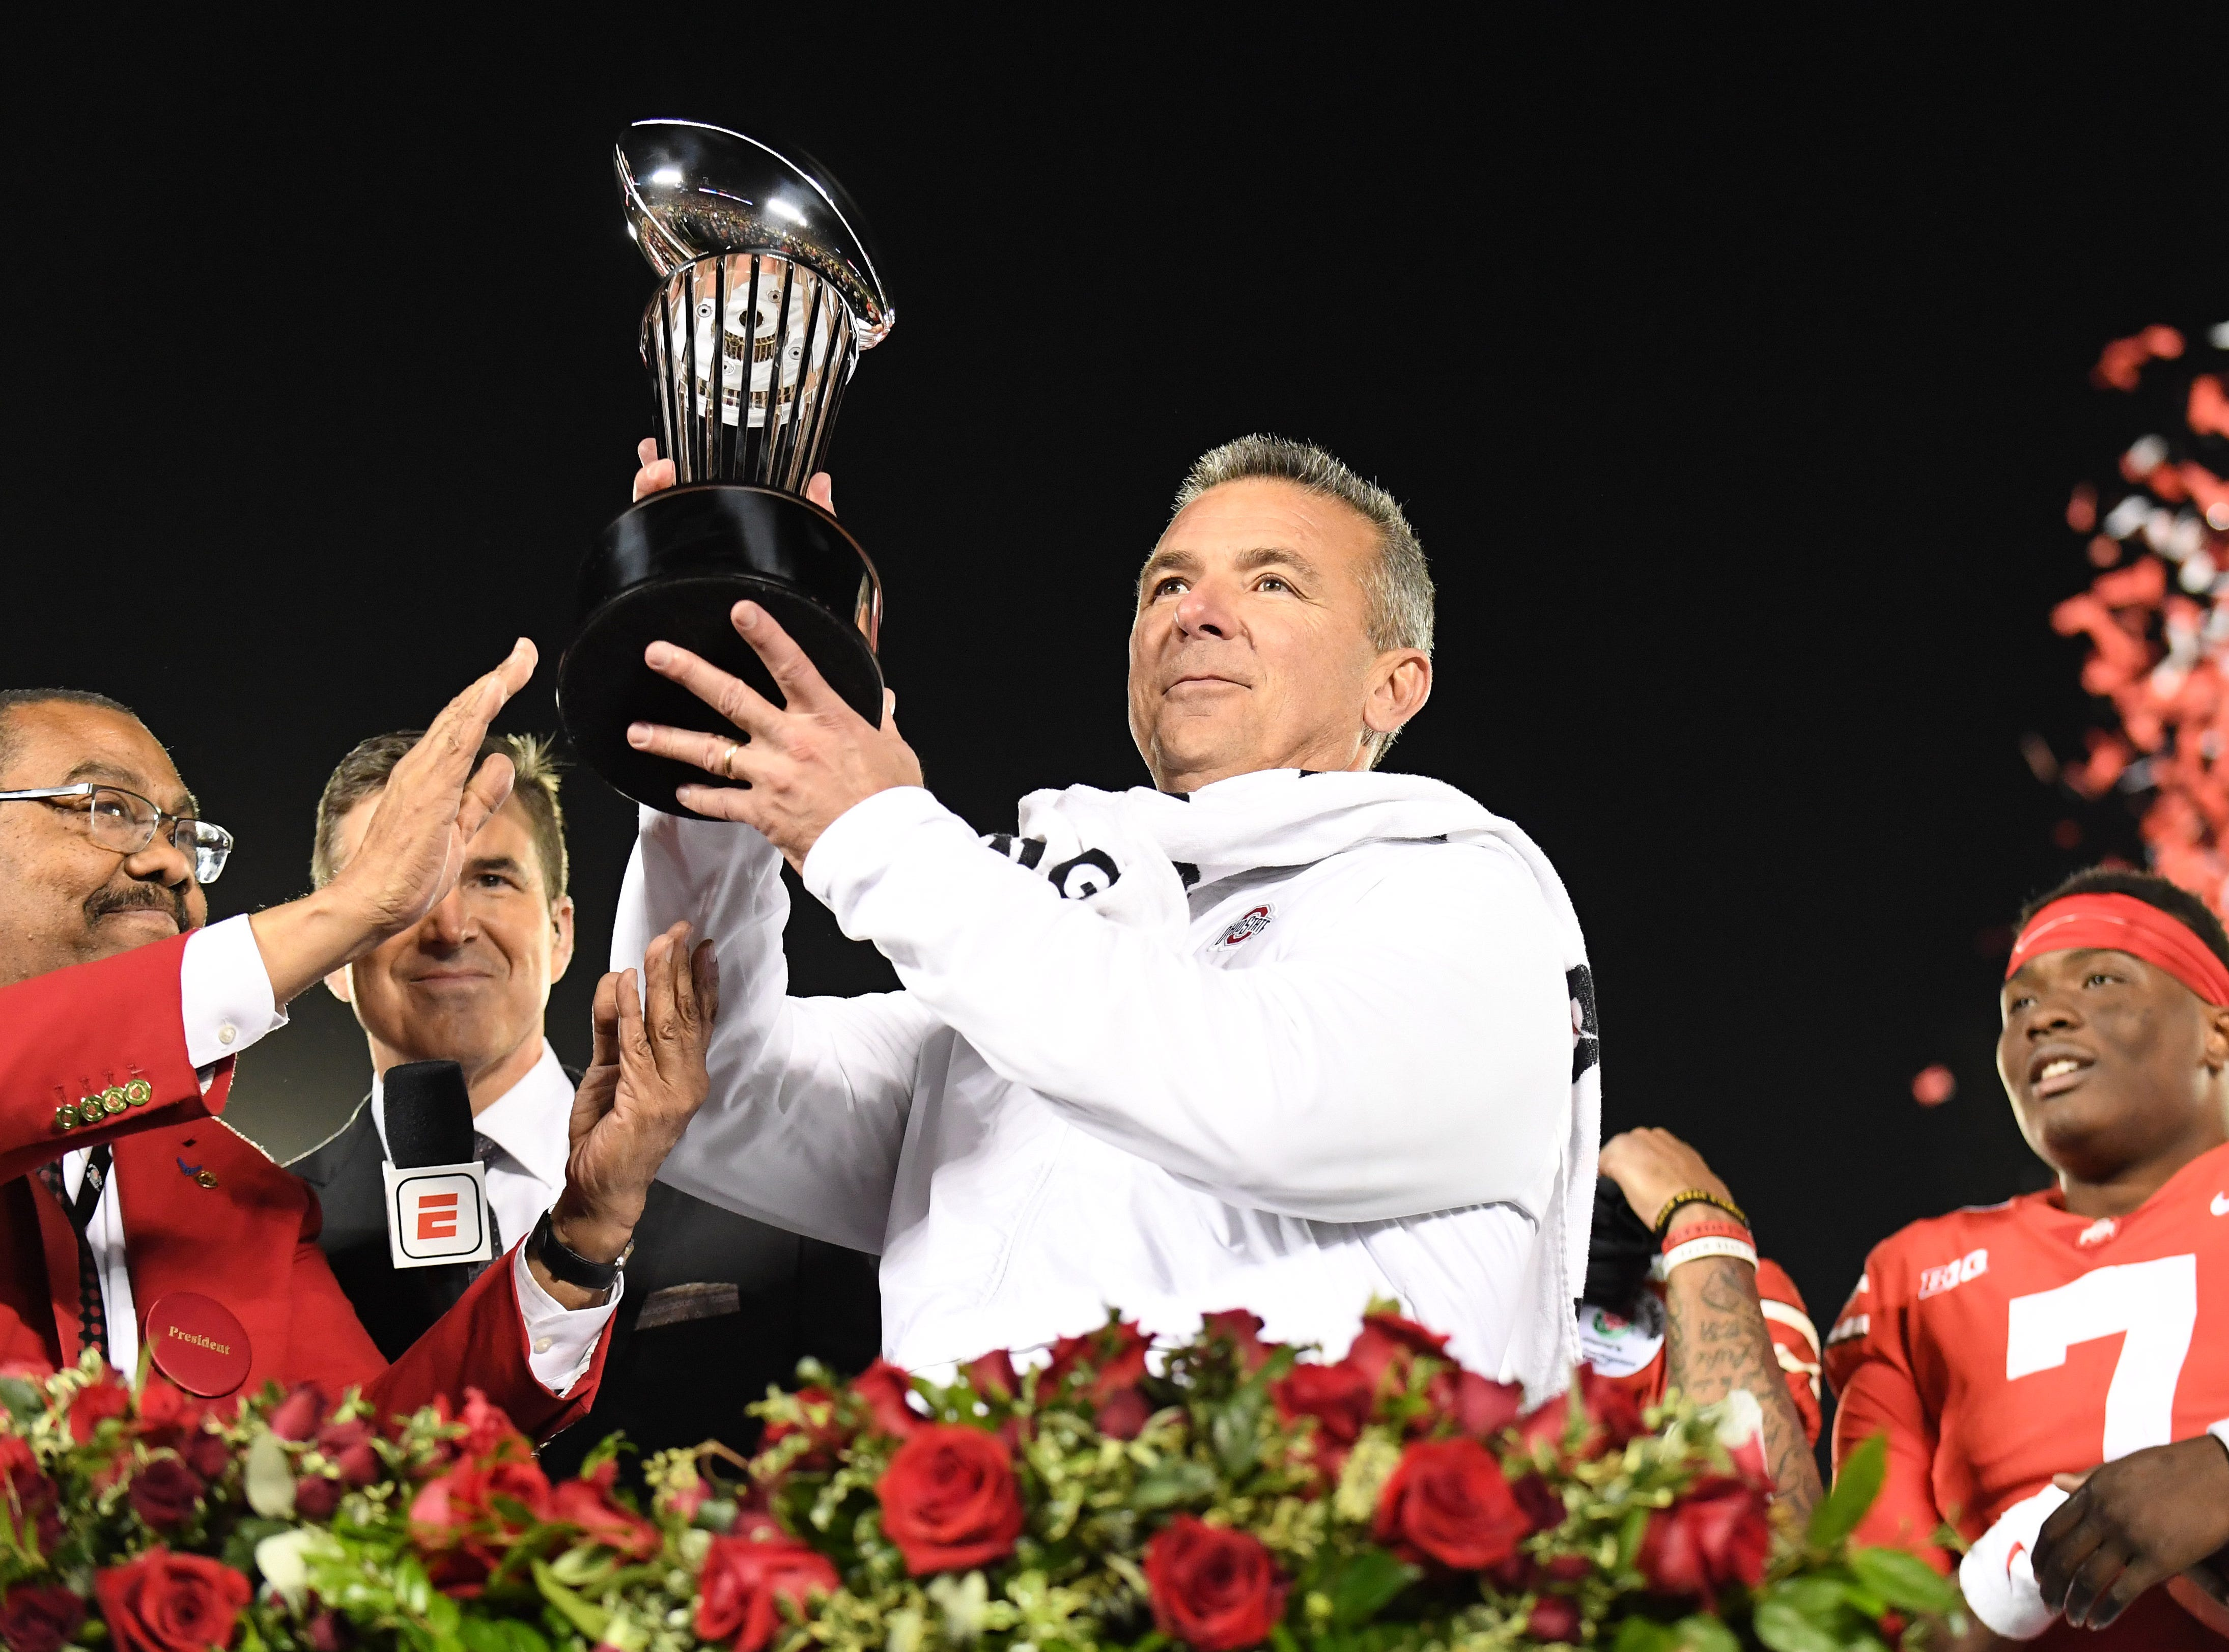 Ohio State Buckeyes head coach Urban Meyer celebrates with the Rose Bowl trophy after beating the Washington Huskies.